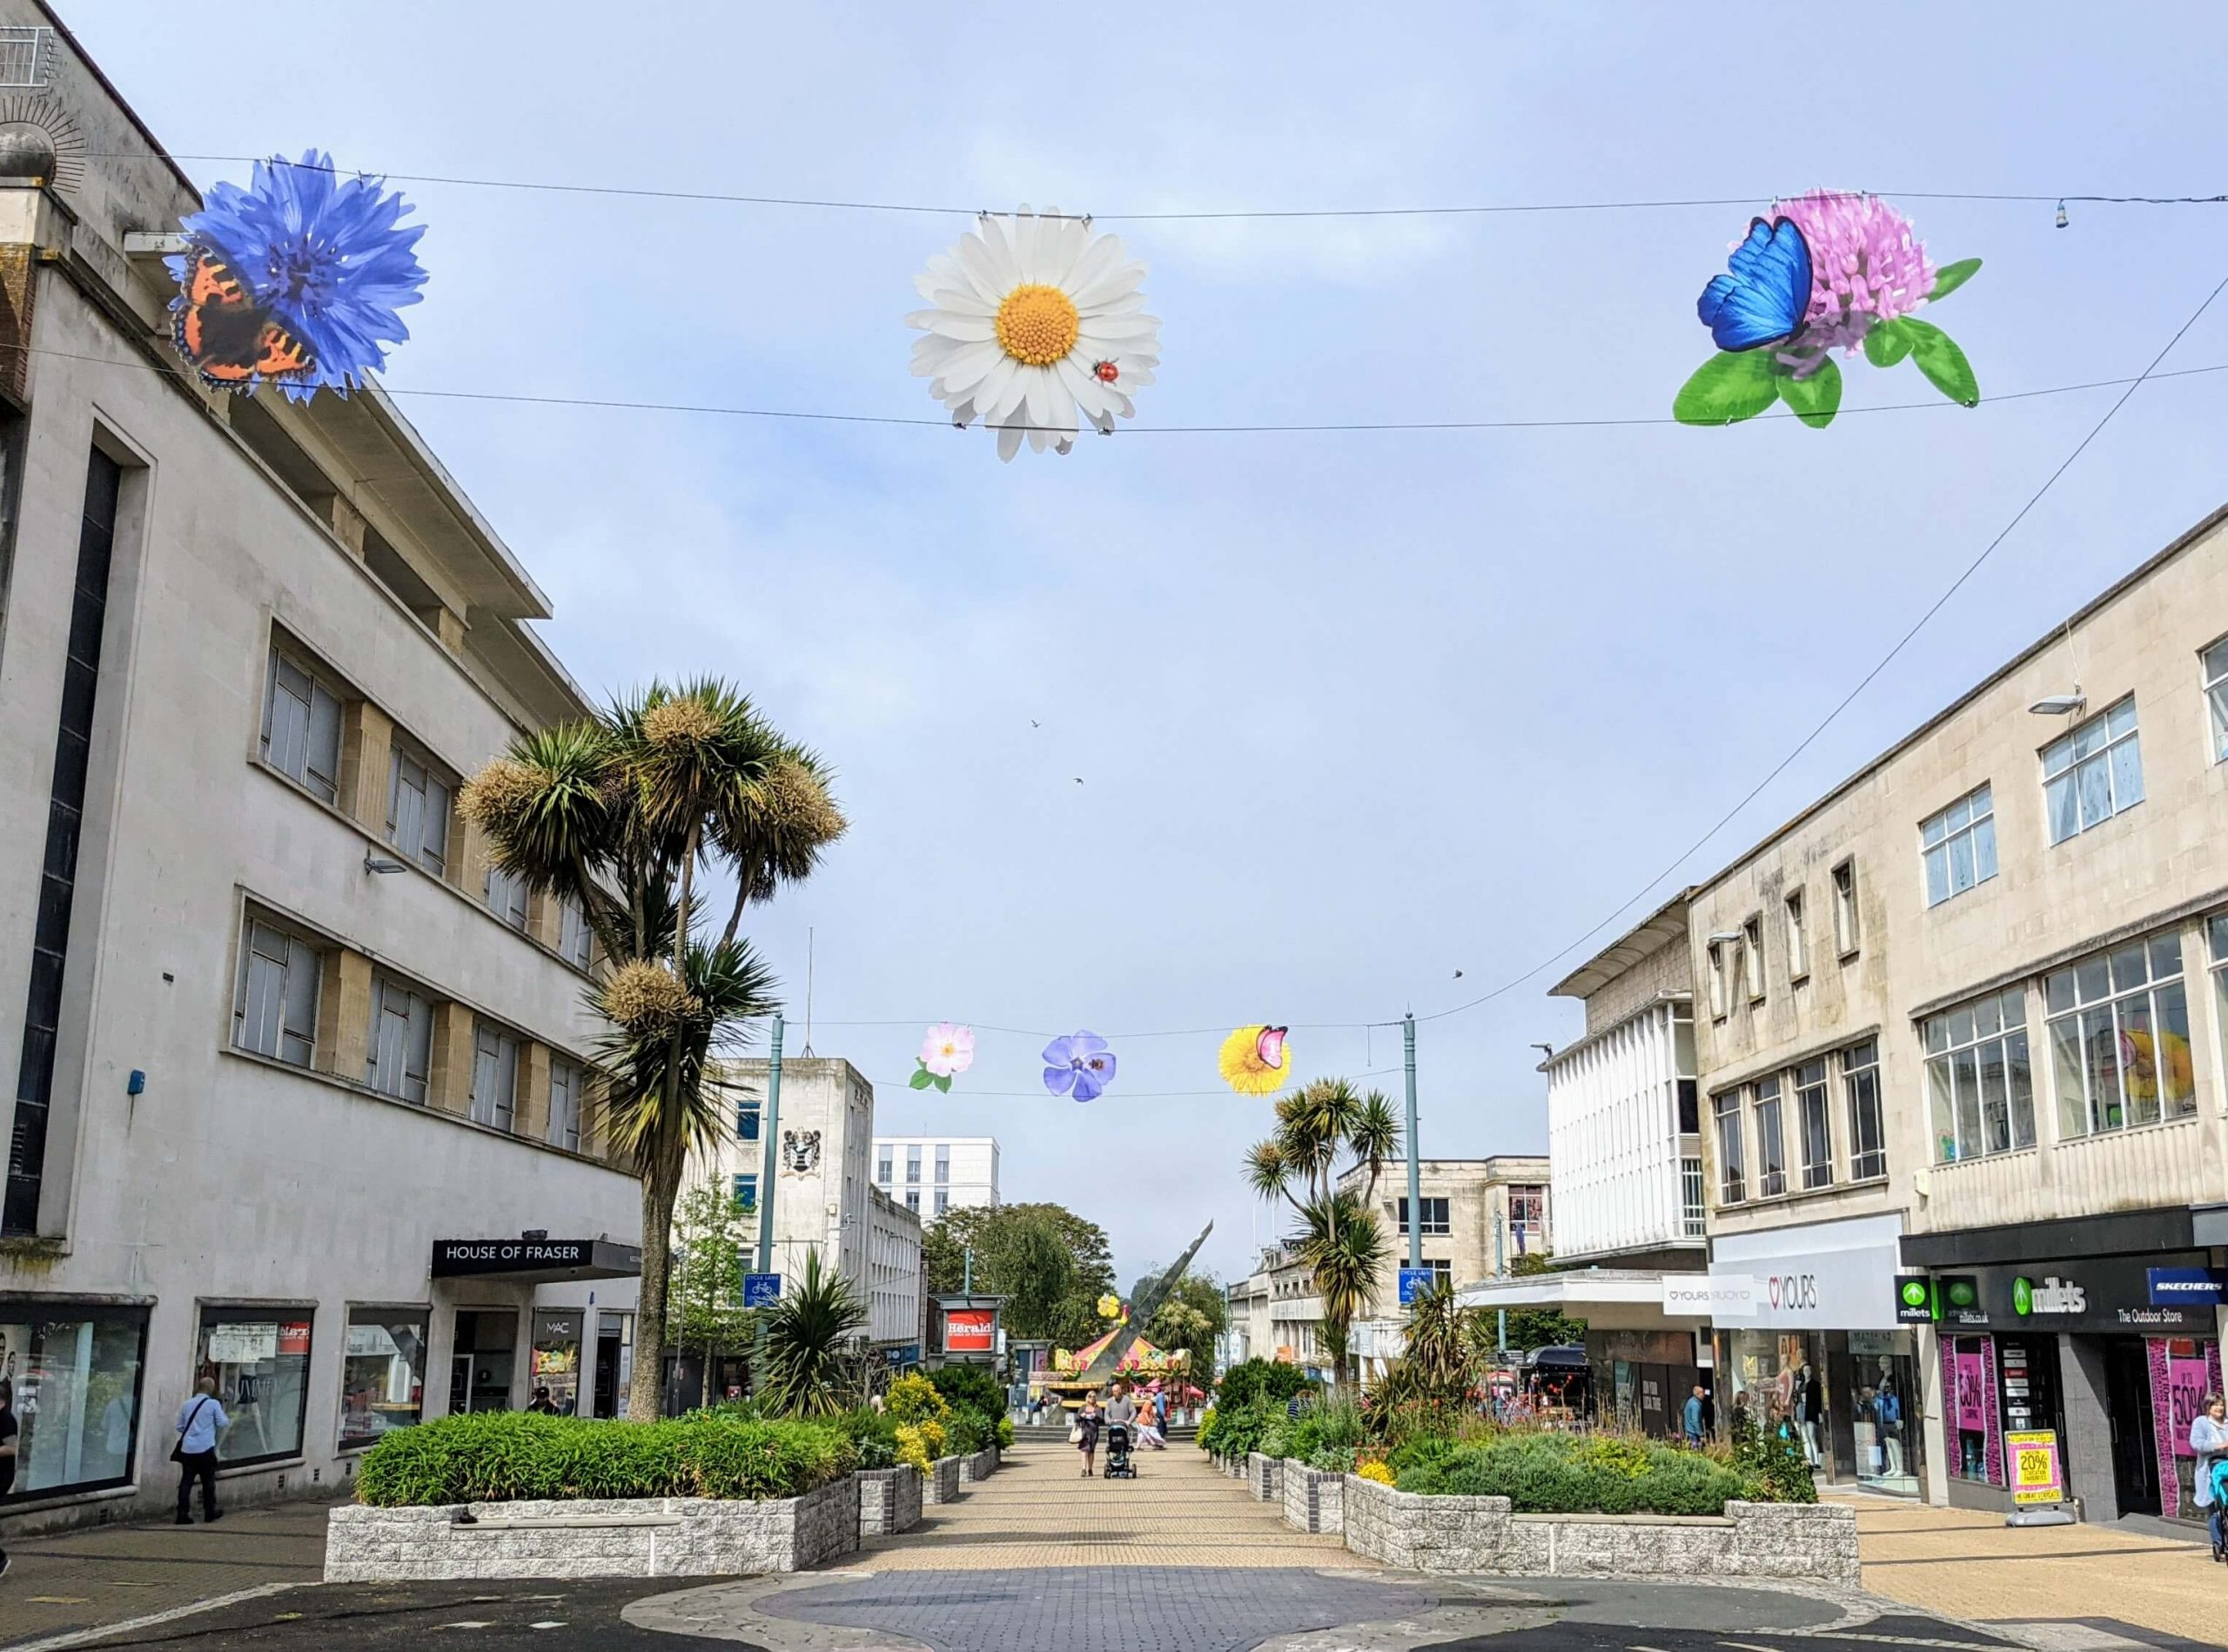 City Centre looks blooming lovely for summer